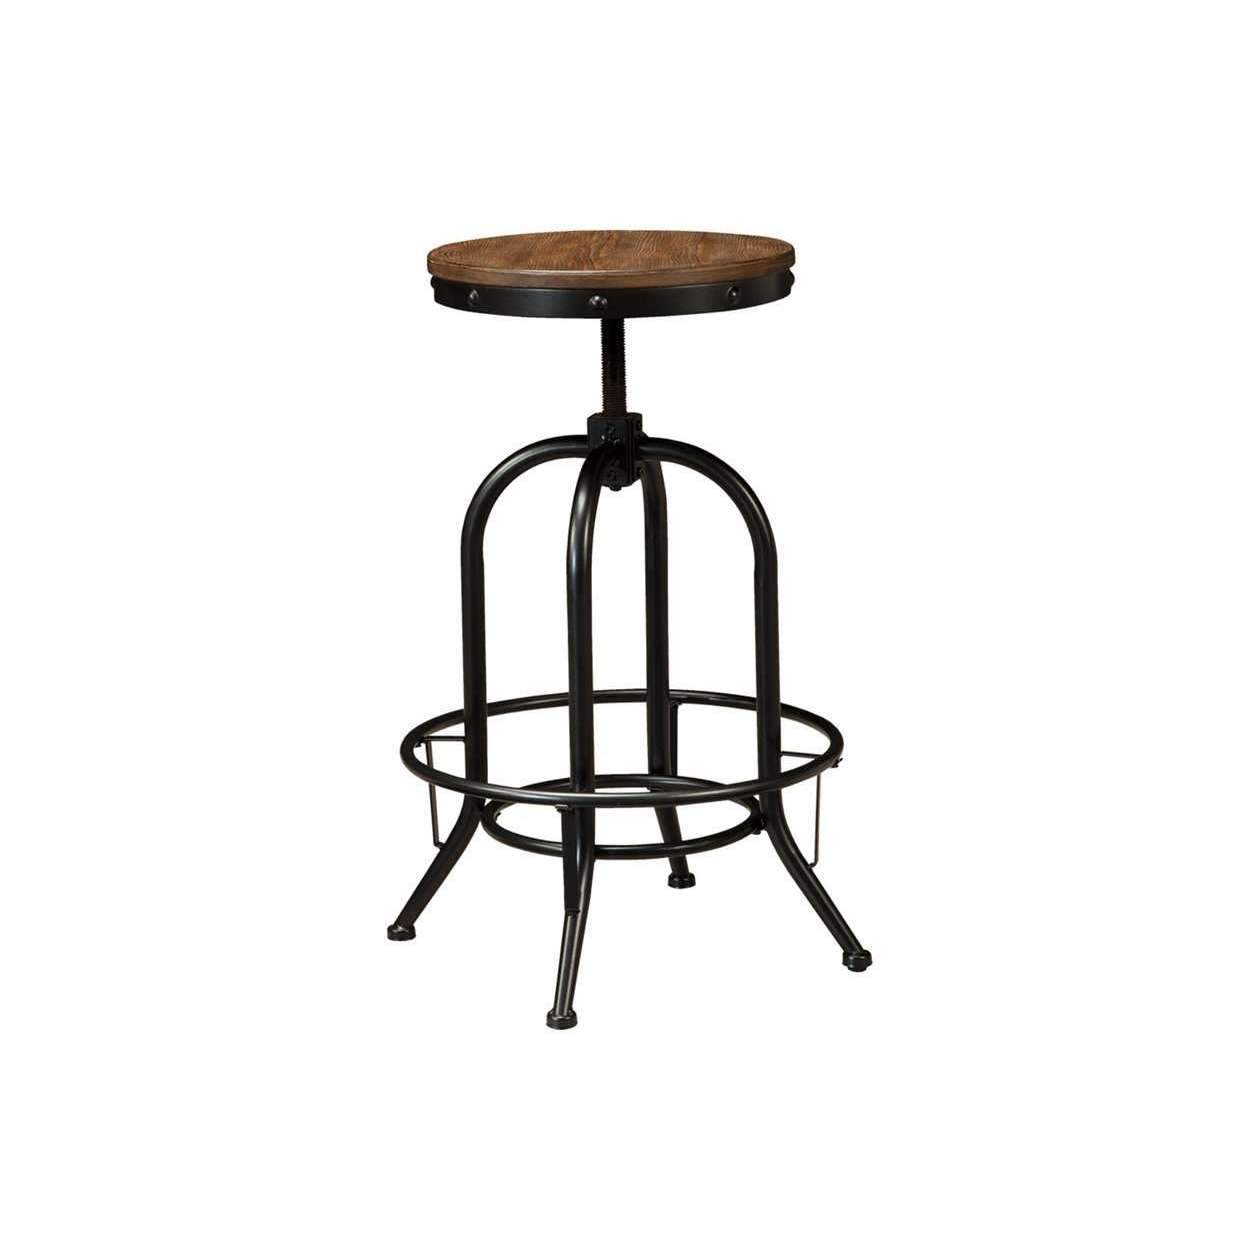 pinnadel bar height stool furniture barn stoolbar accent table coffee tables end console stands entertainment consoles sectionals round sectional lift top battery powered lamps